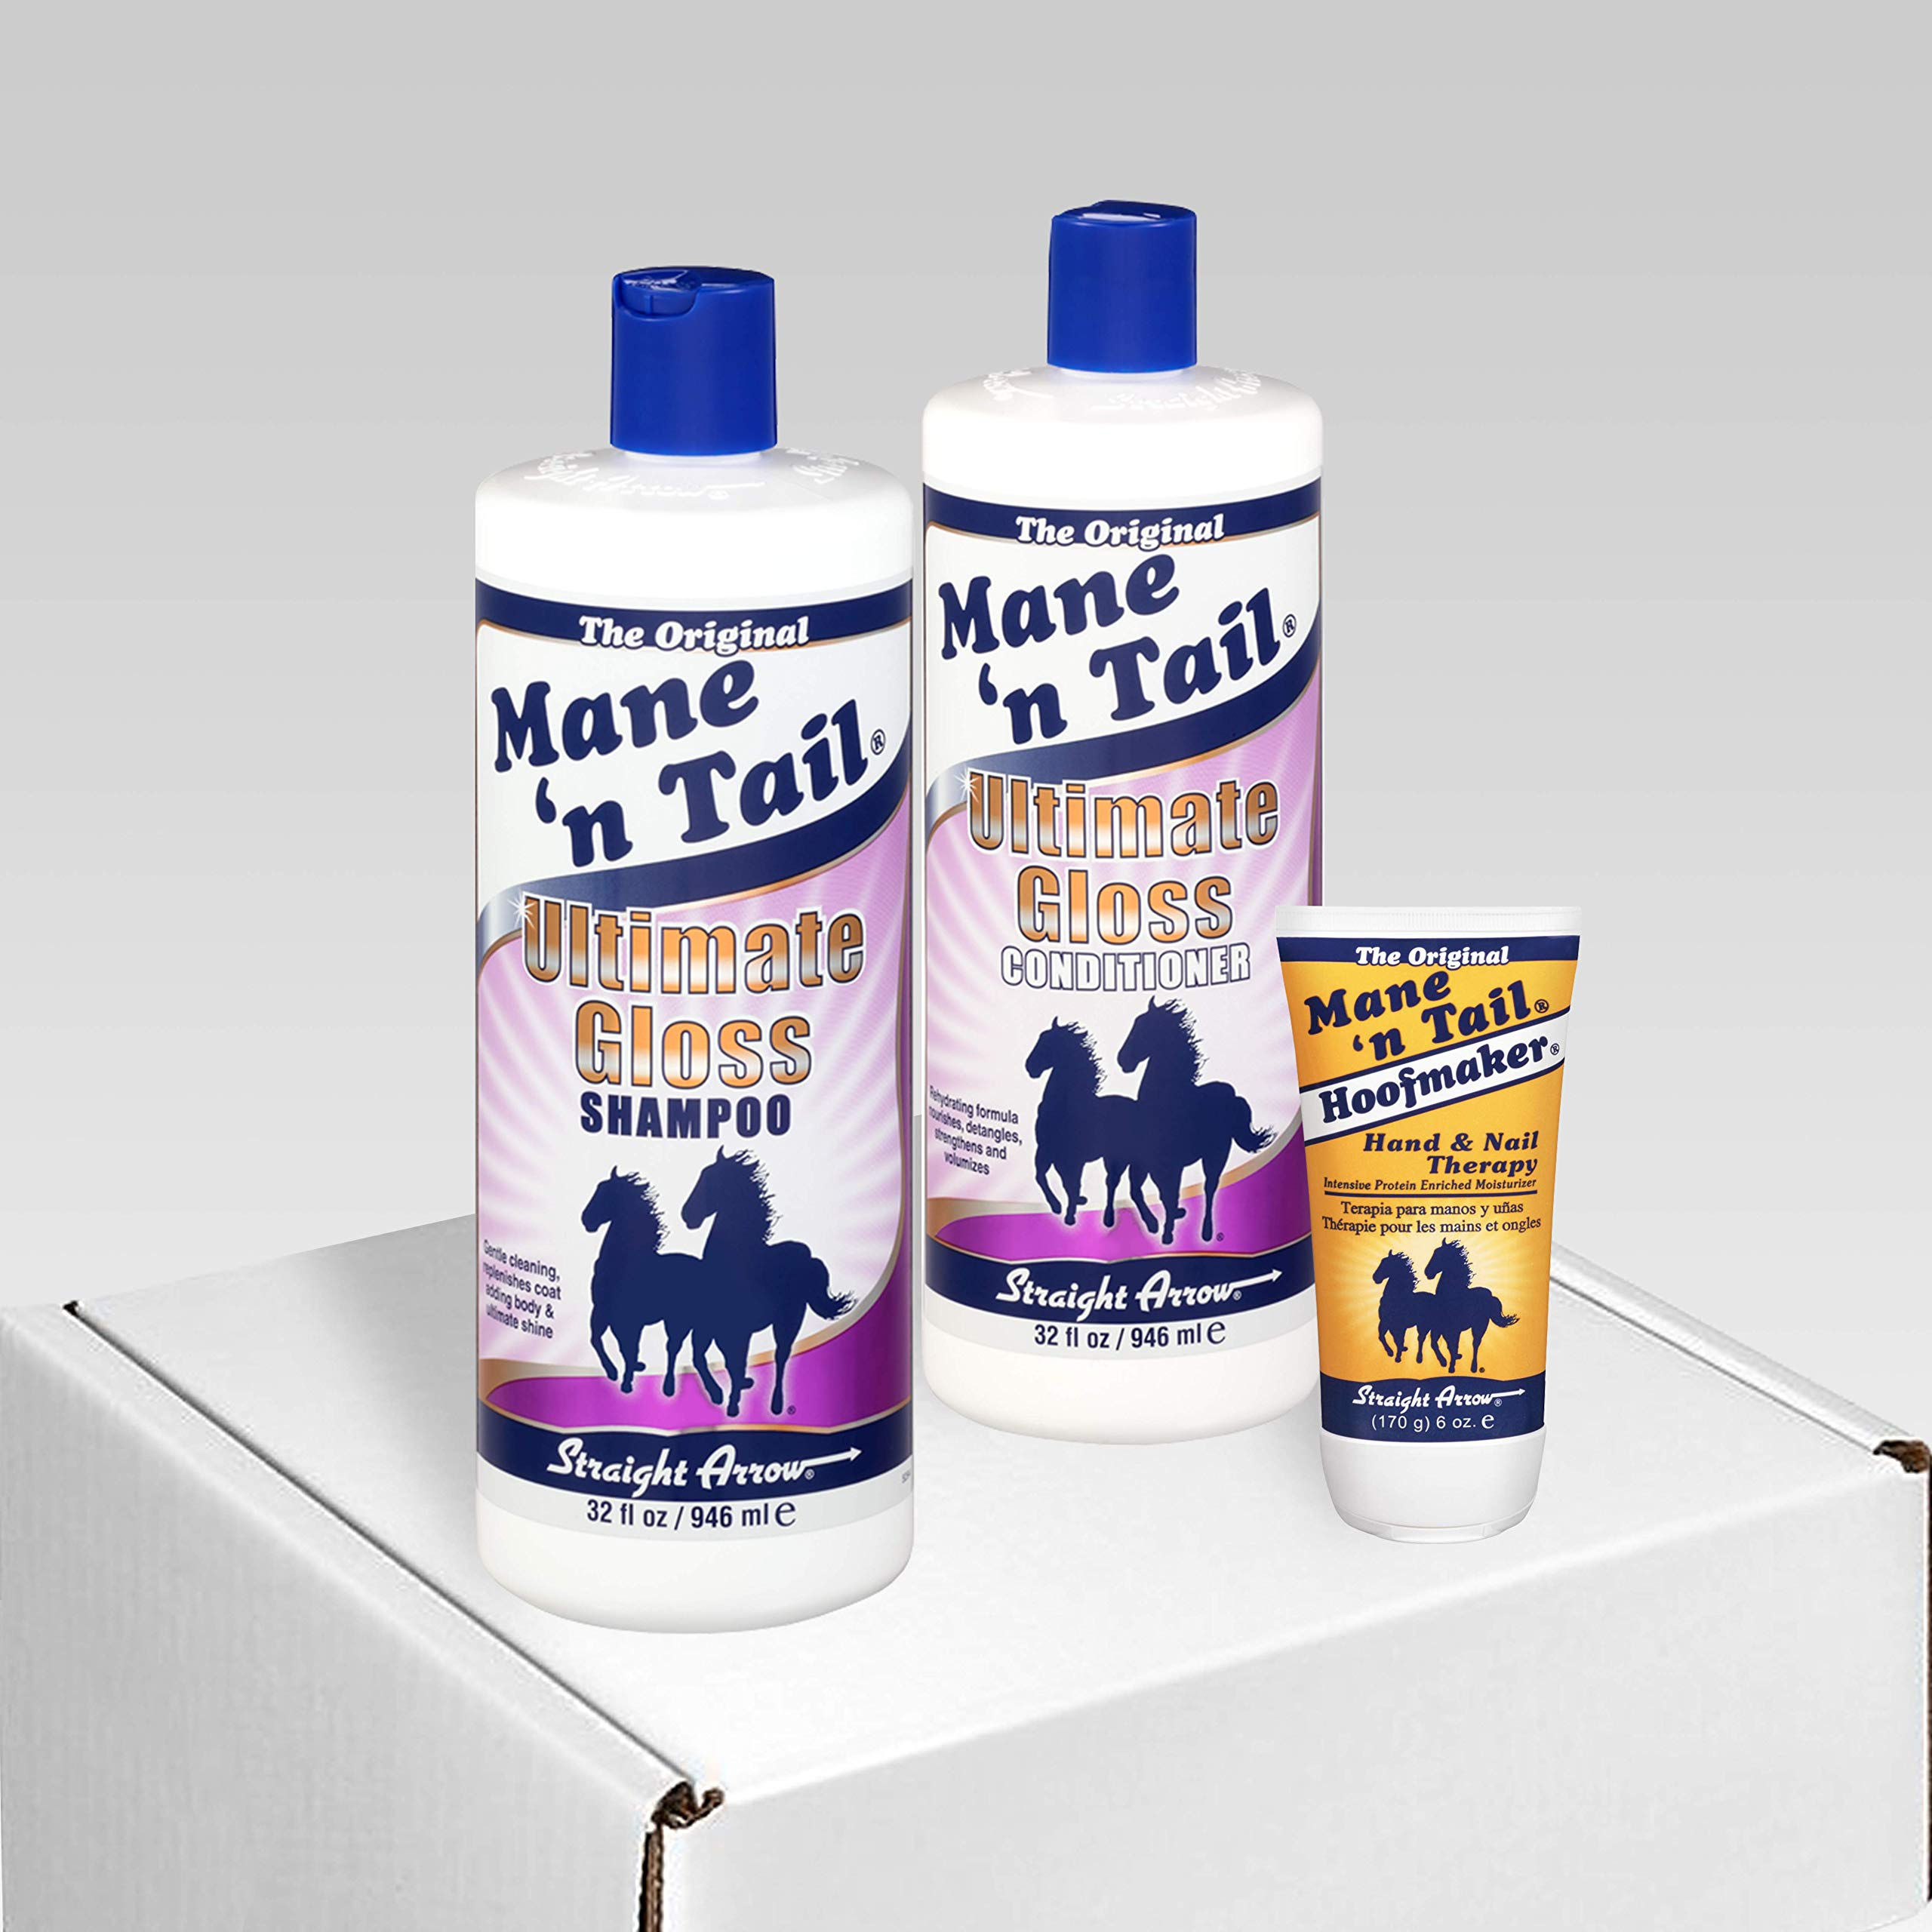 Mane 'n Tail NEW Ultimate Gloss Shampoo 32 Ounce/Ultimate Gloss Conditioner 32 Ounce with Coconut Oil/Free Hoofmaker Tube by Mane 'n Tail (Image #1)